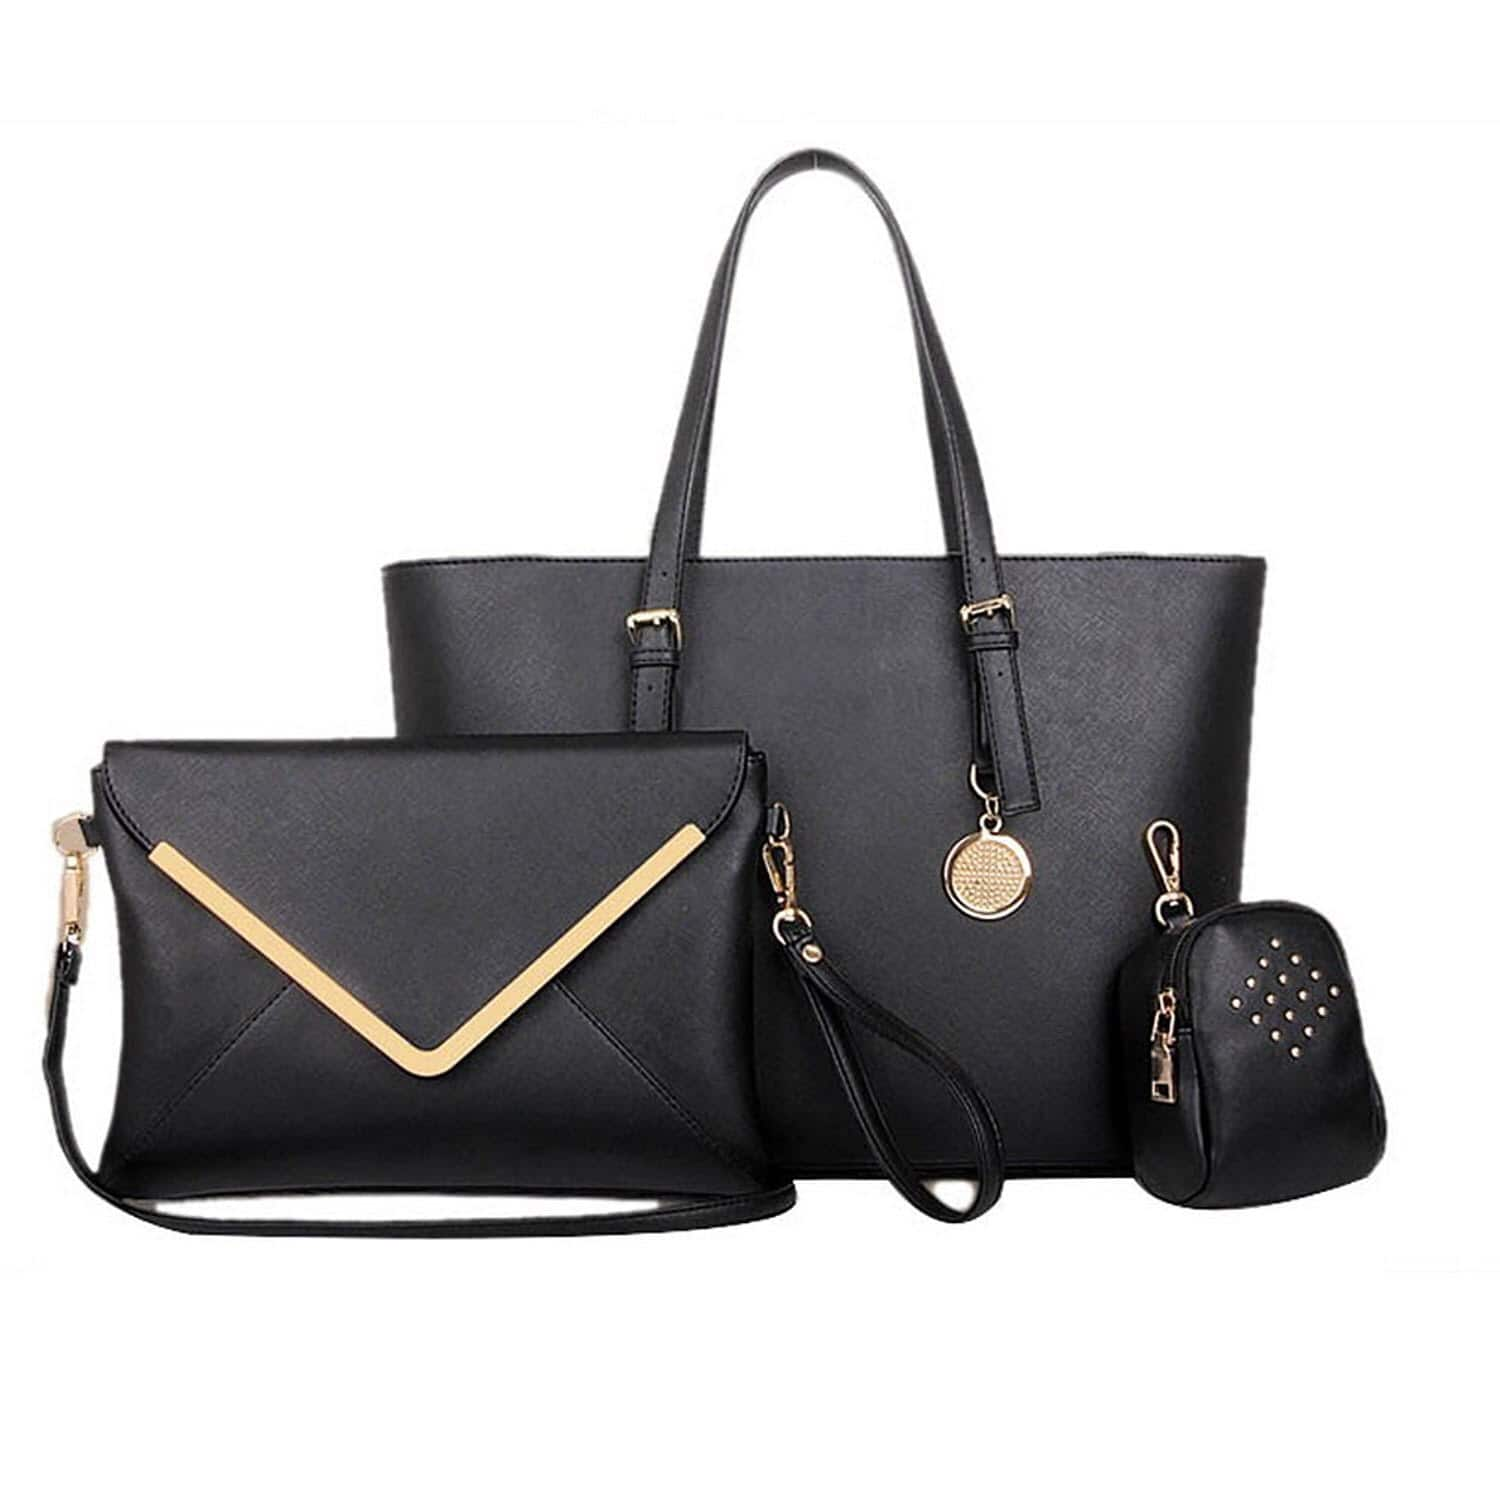 Fashion Road Luxury Womens 3 Pcs Satchel Hobo Tote Handbag Set for $22.19 @ Amazon.com